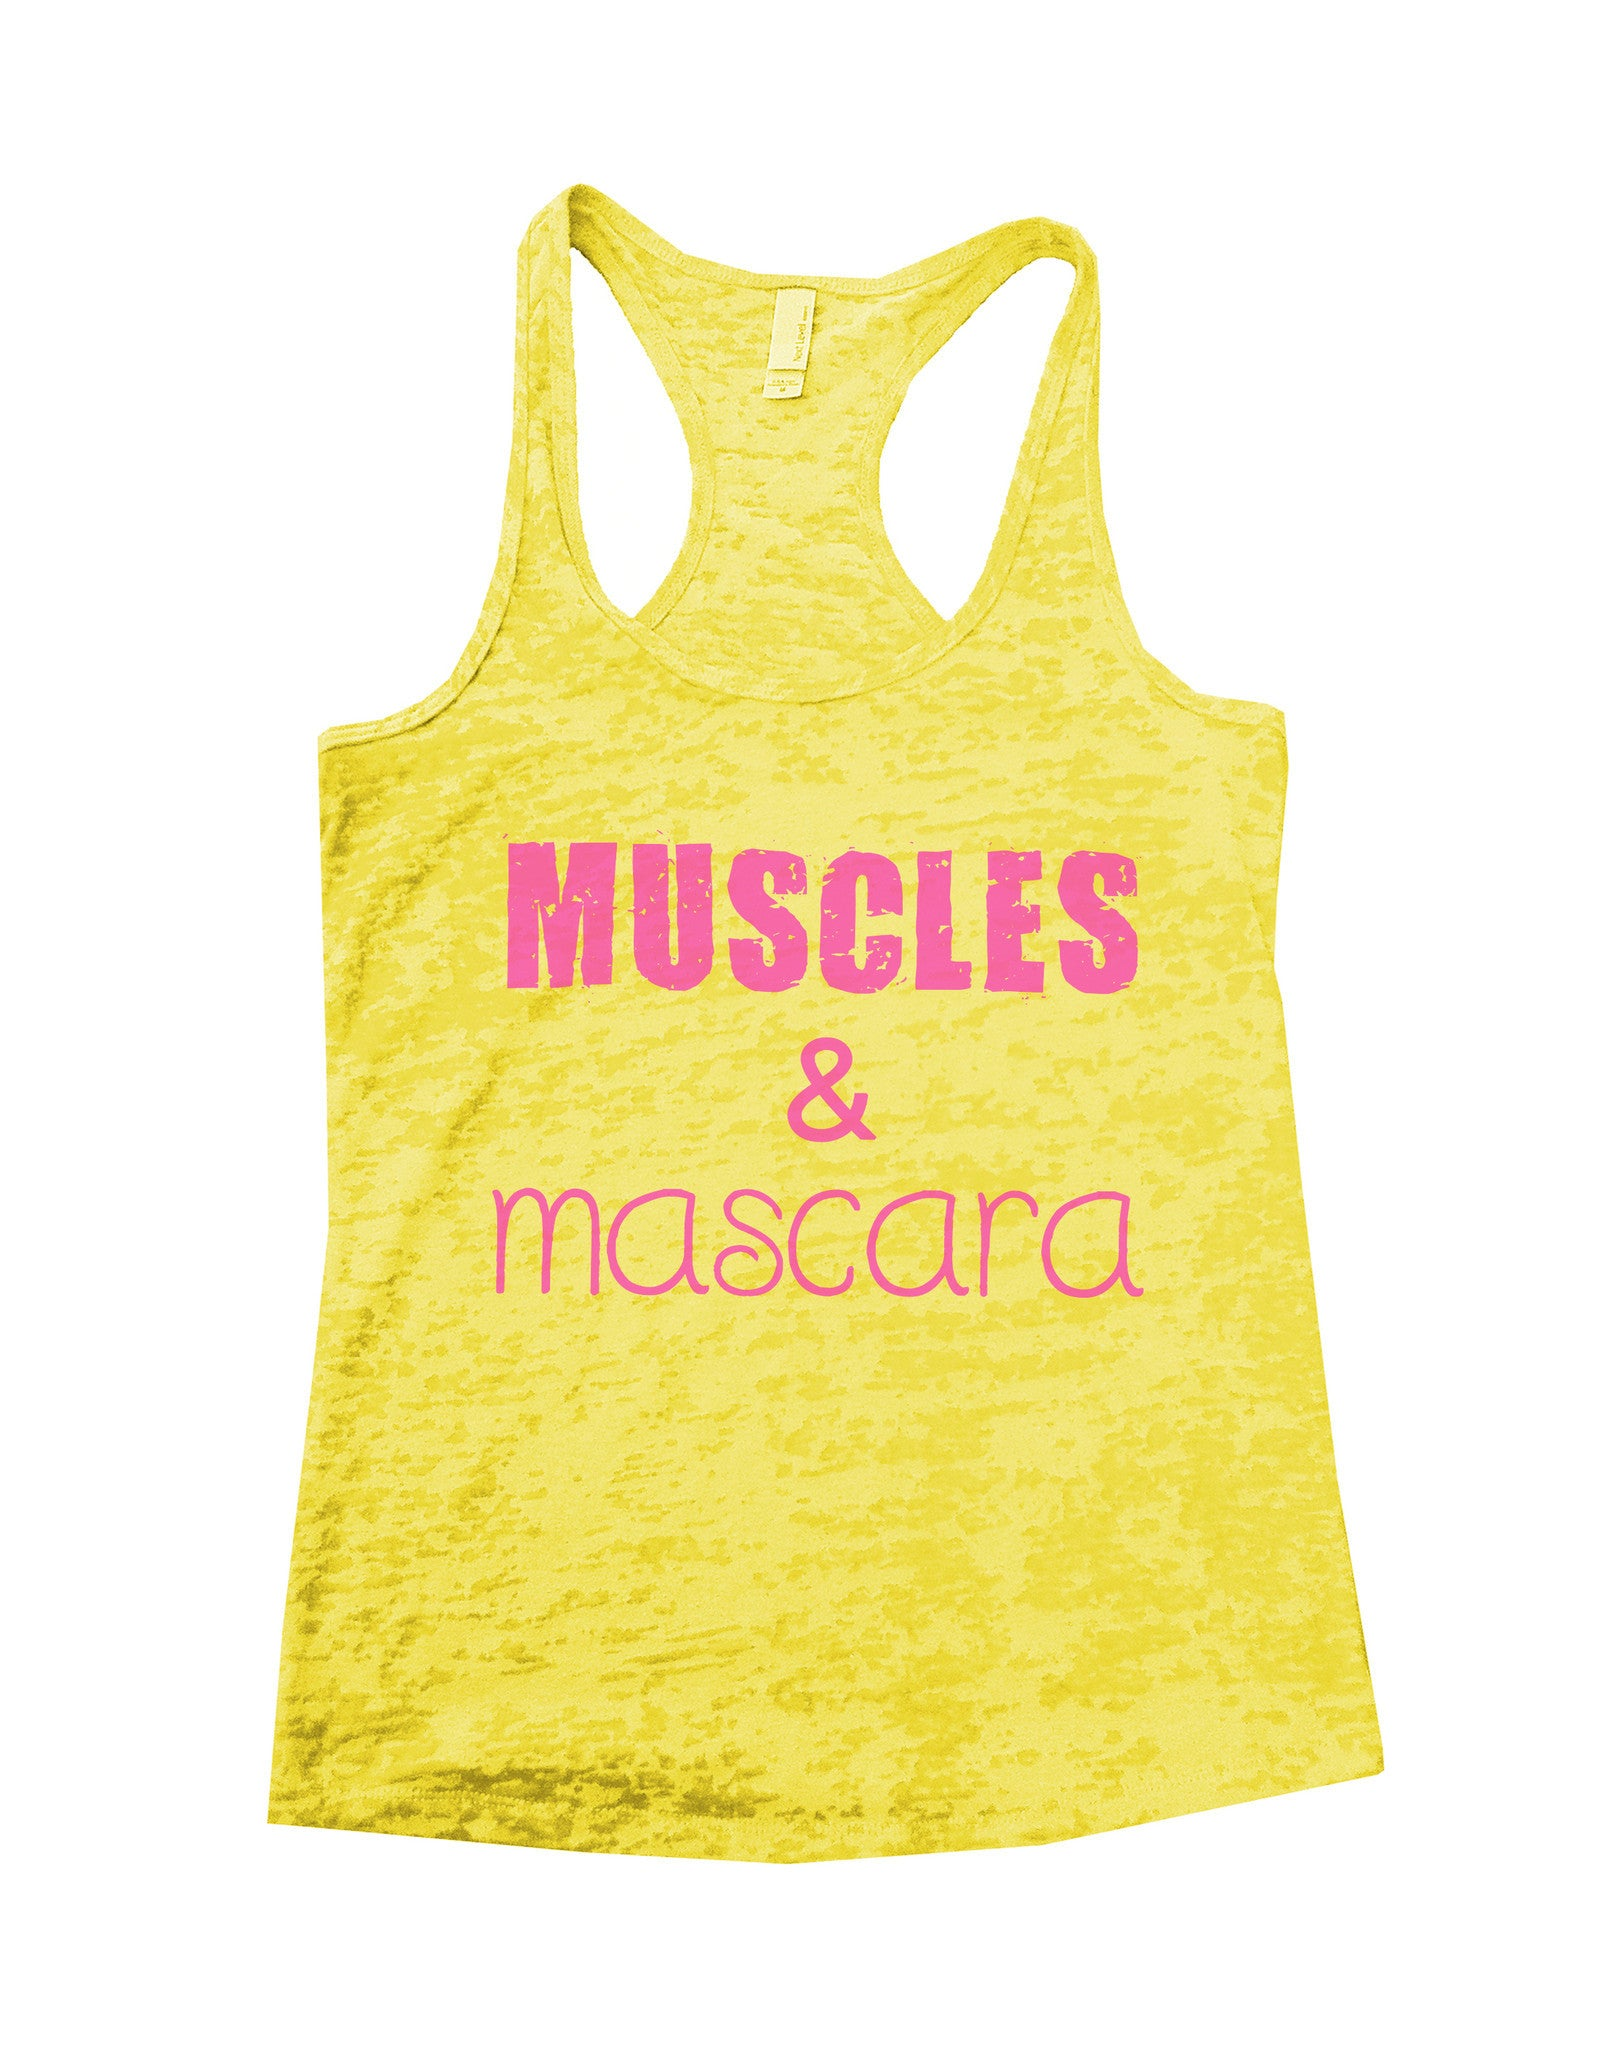 Muscles & Mascara Burnout Tank Top By BurnoutTankTops.com - 522 - Funny Shirts Tank Tops Burnouts and Triblends  - 5